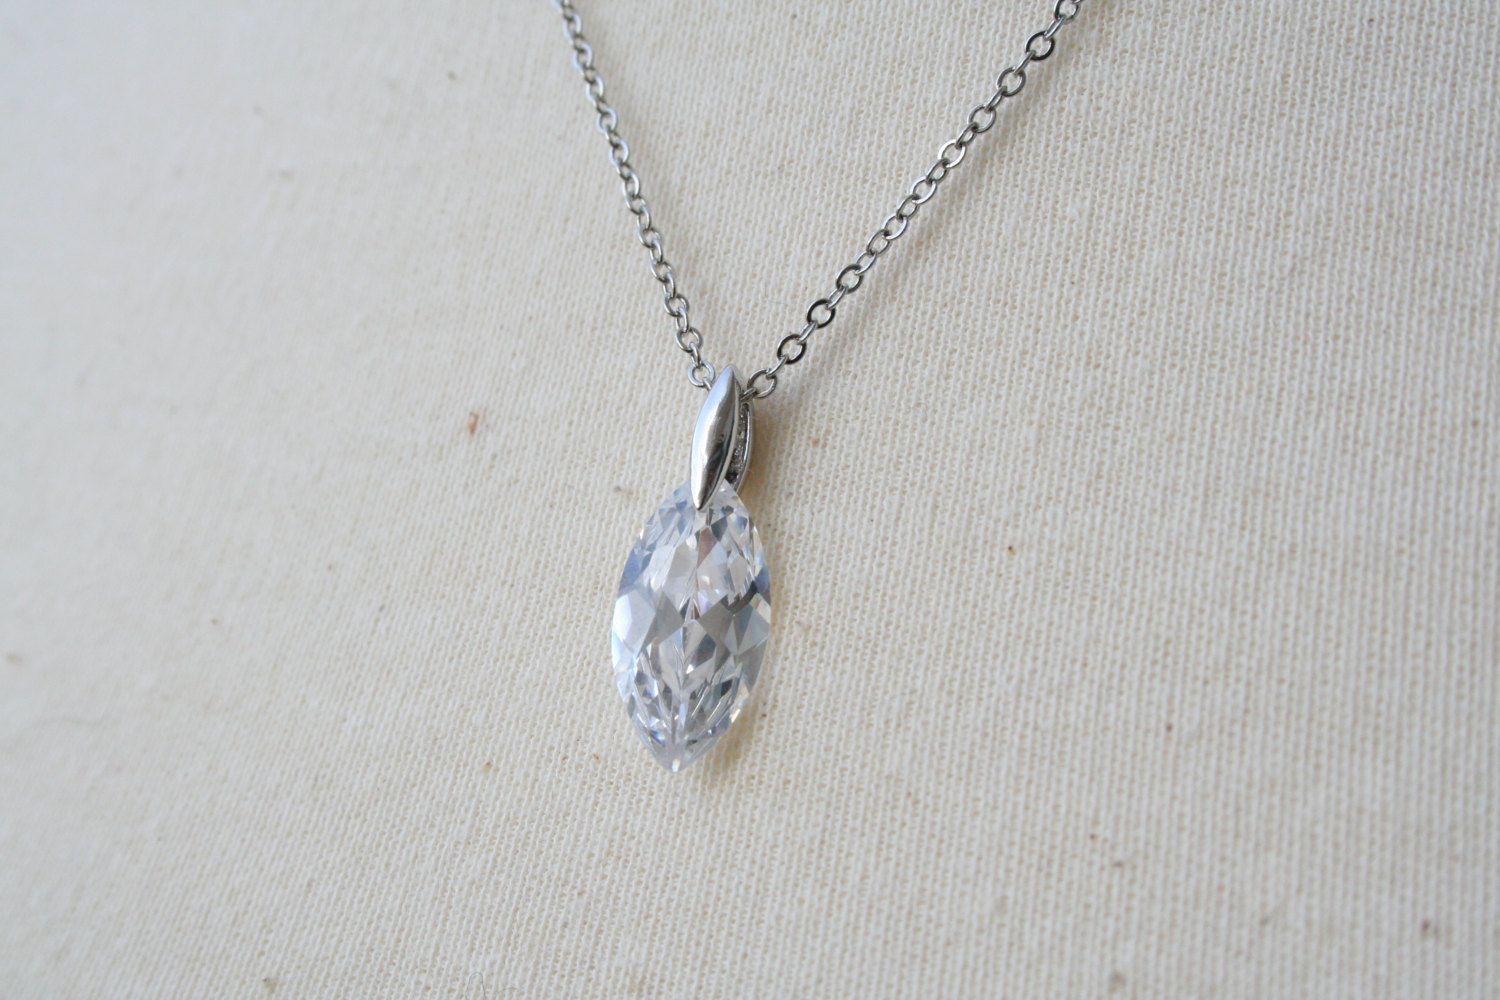 Teardrop Cubic Zirconia Necklace - Crystal. $23.00, via Etsy.